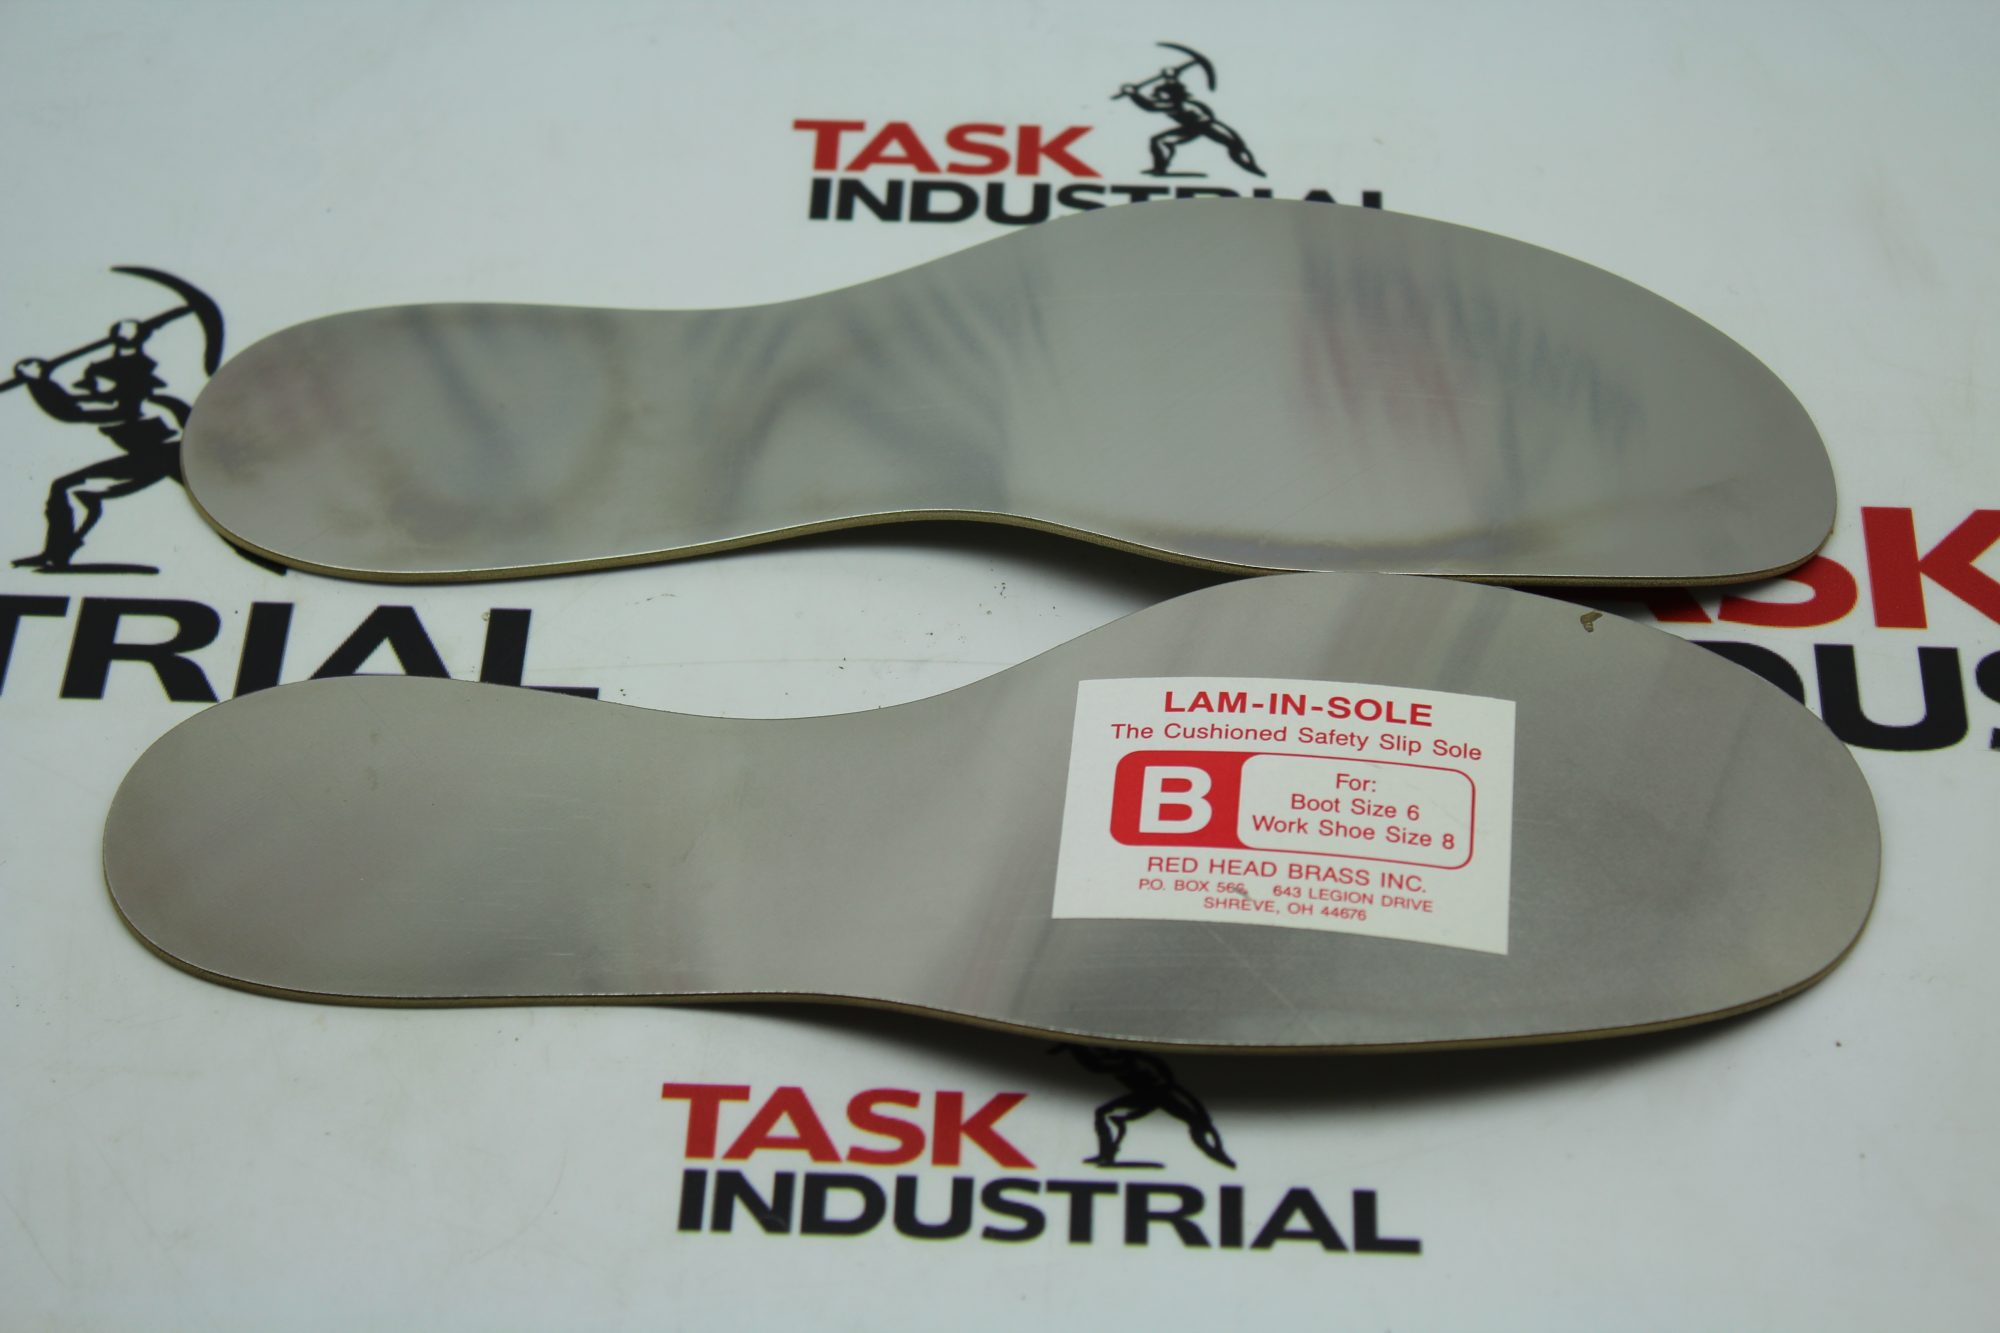 Red Head Brass Inc. LAM-IN-SOLE Boot Size 6 Safety Slip Sole